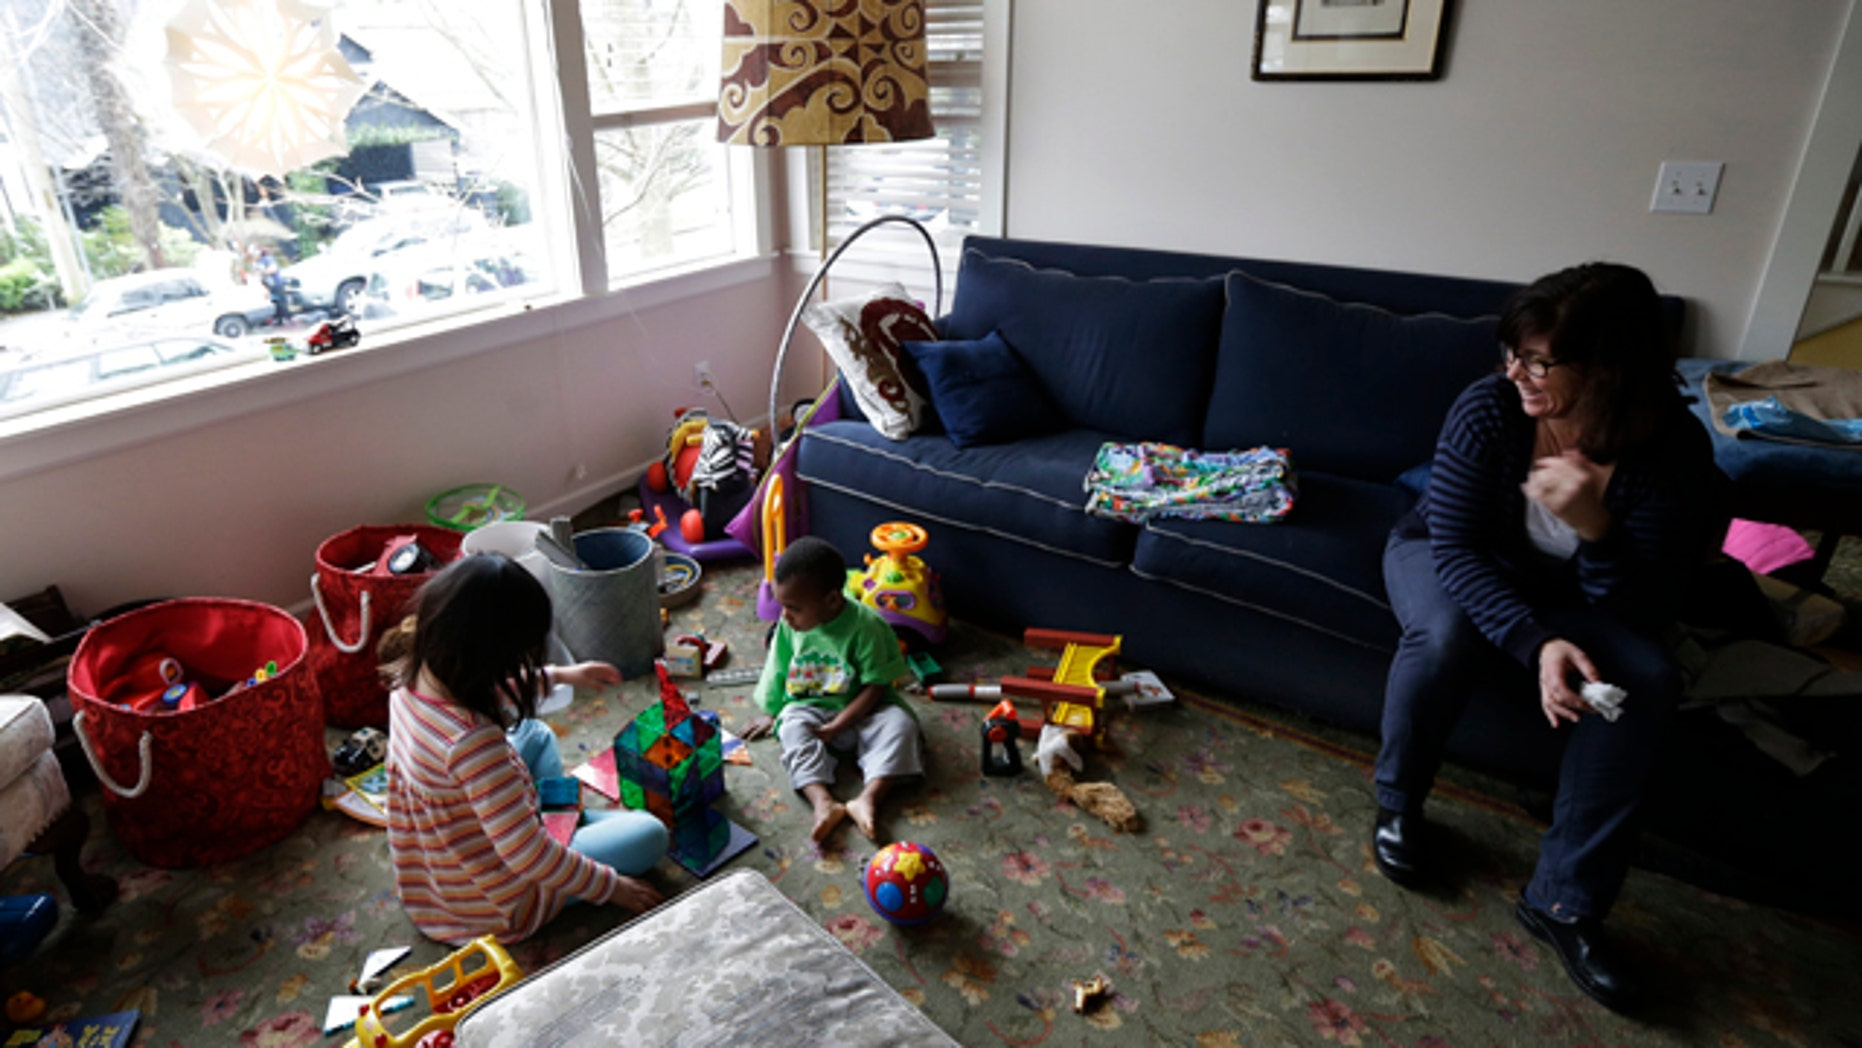 Feb. 12, 2013: Nancy Jensen, right, watches as her children, Elizabeth, 6, left, and Joe, 2, center, play with a building set and other toys.